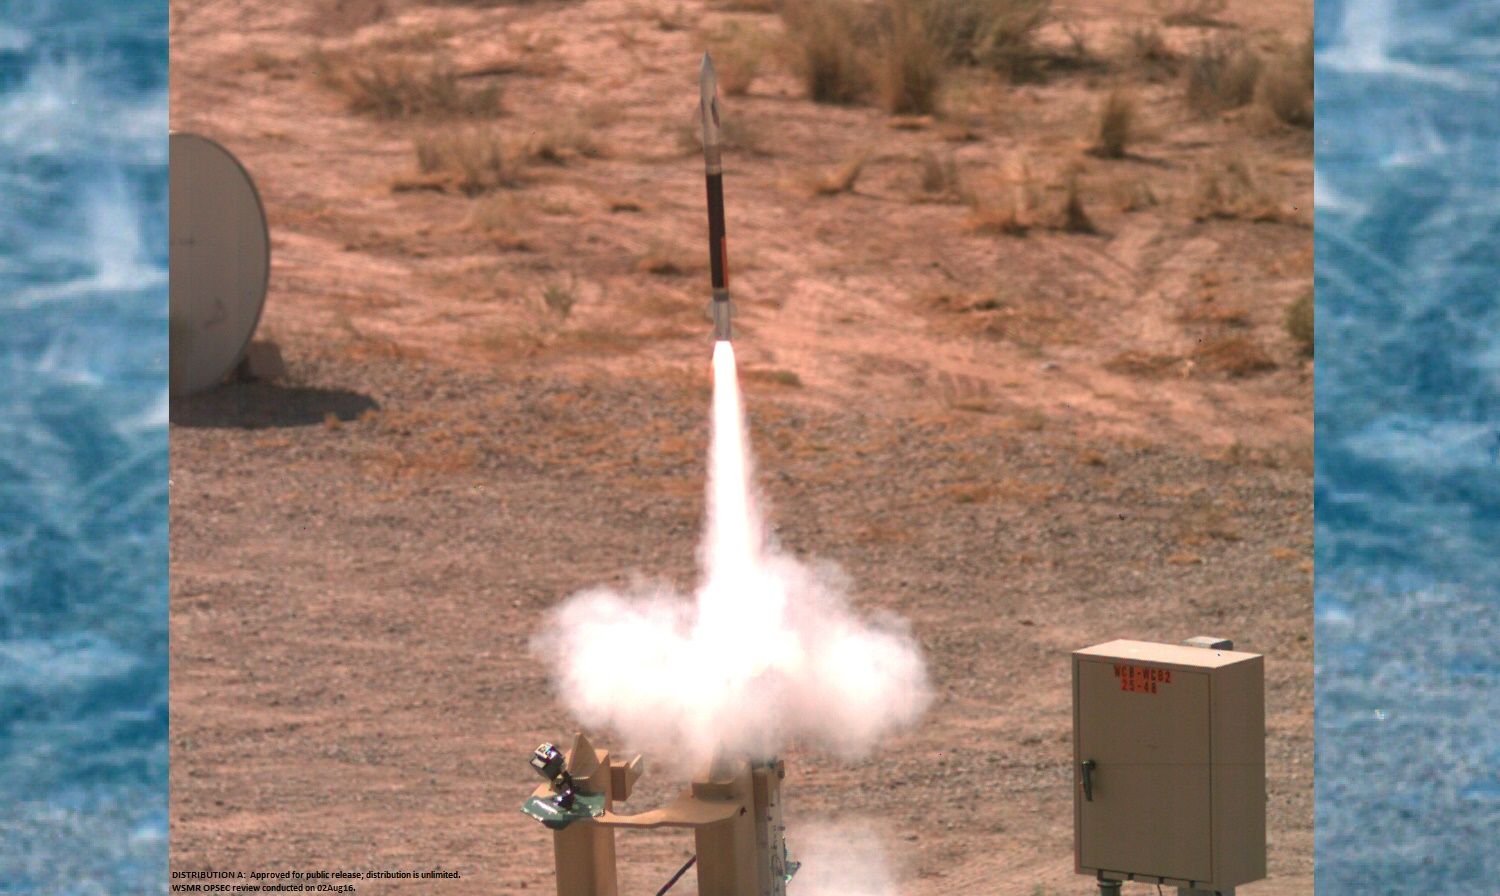 Lockheed Martin's Miniature Hit-to-Kill missile successfully completes second flight test